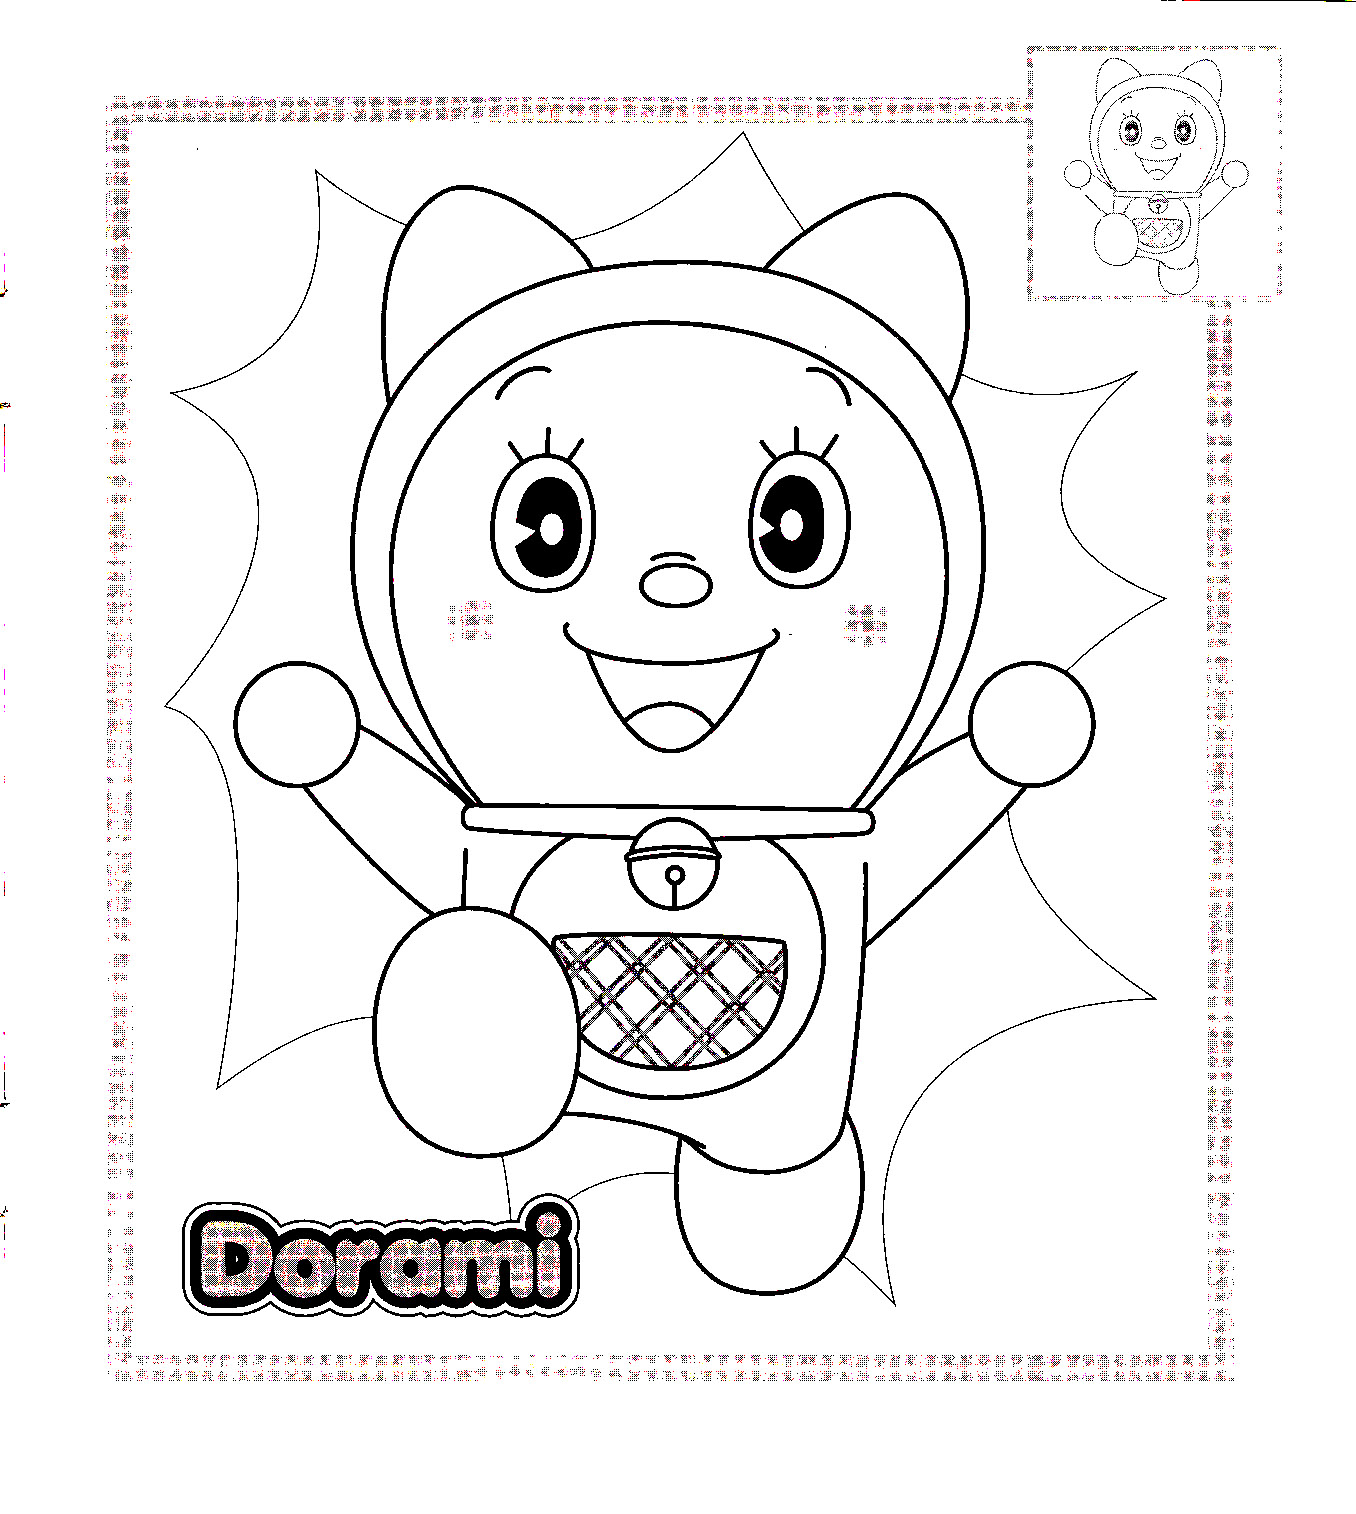 Doraemon coloring games online - Doraemon Free To Print Coloring Page